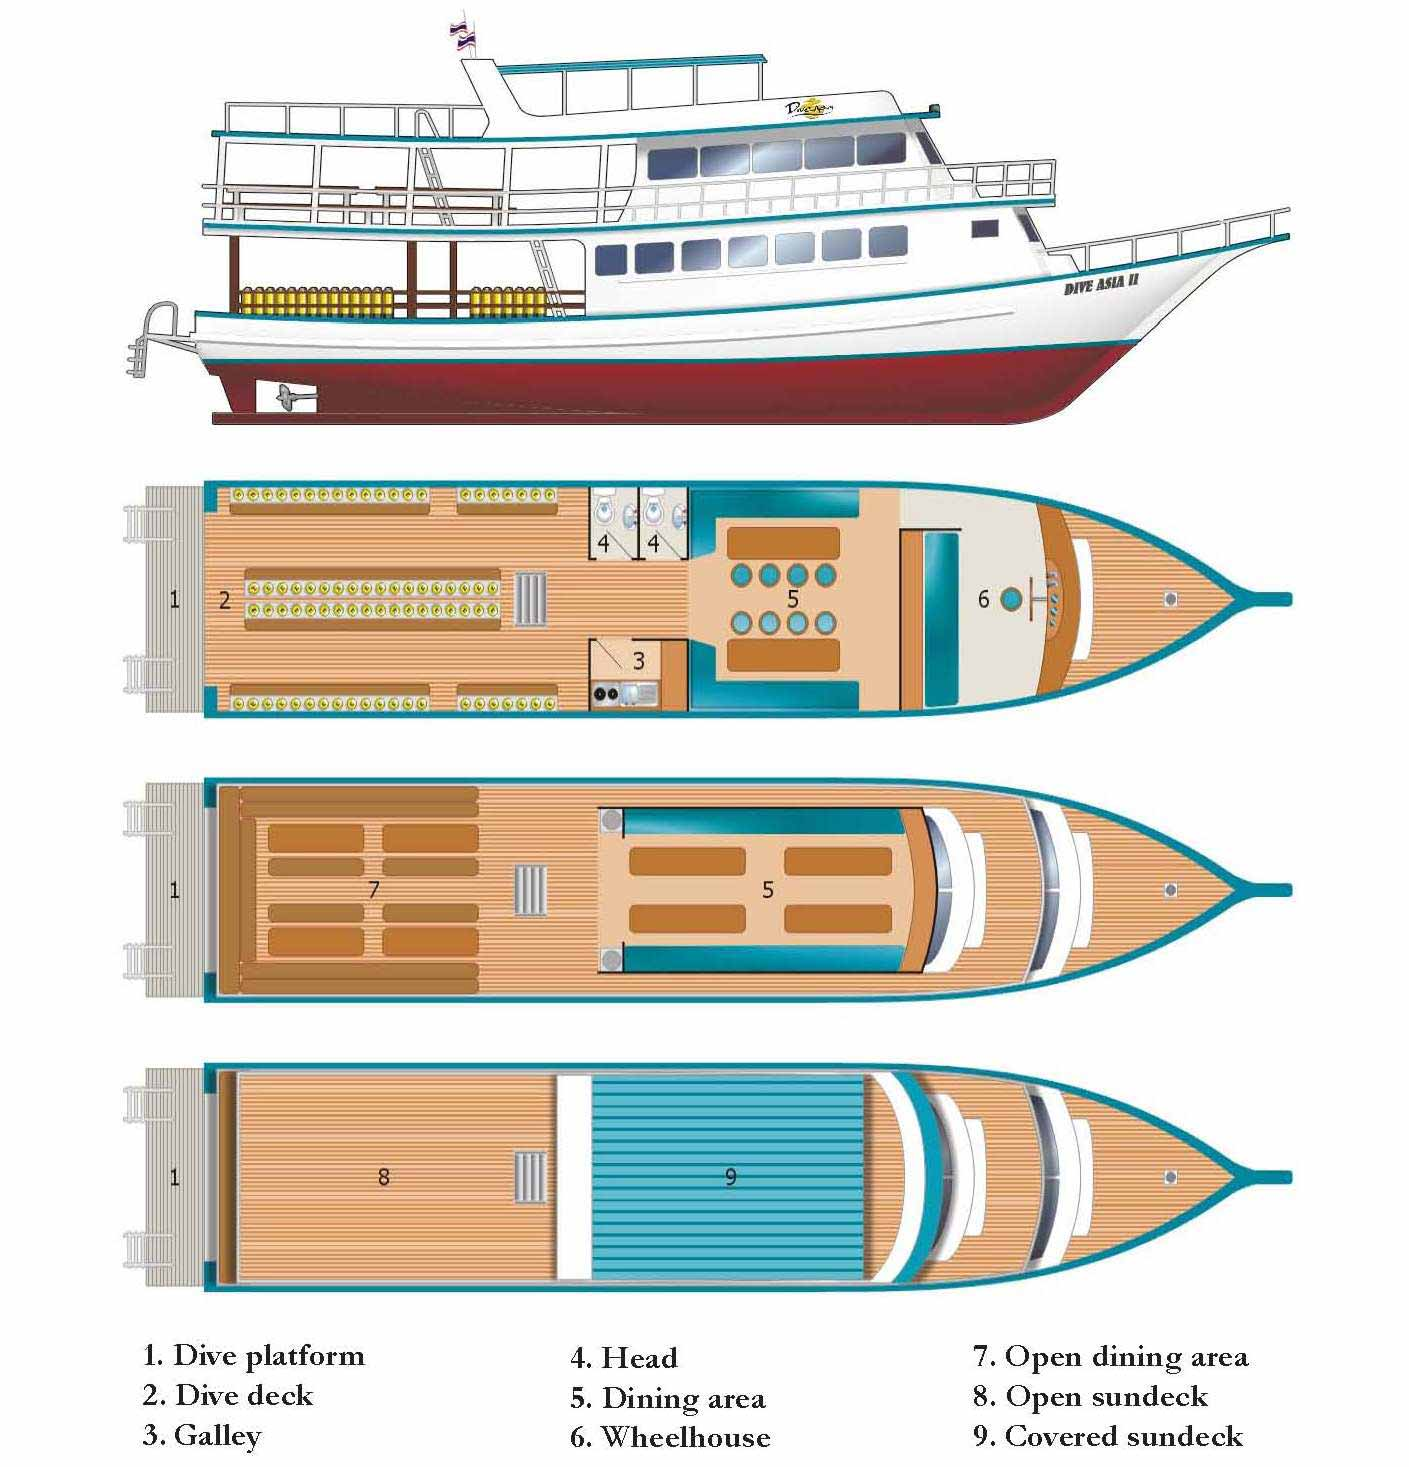 Deck Plan of Indepth Dive Centre Day Trip Boat 5